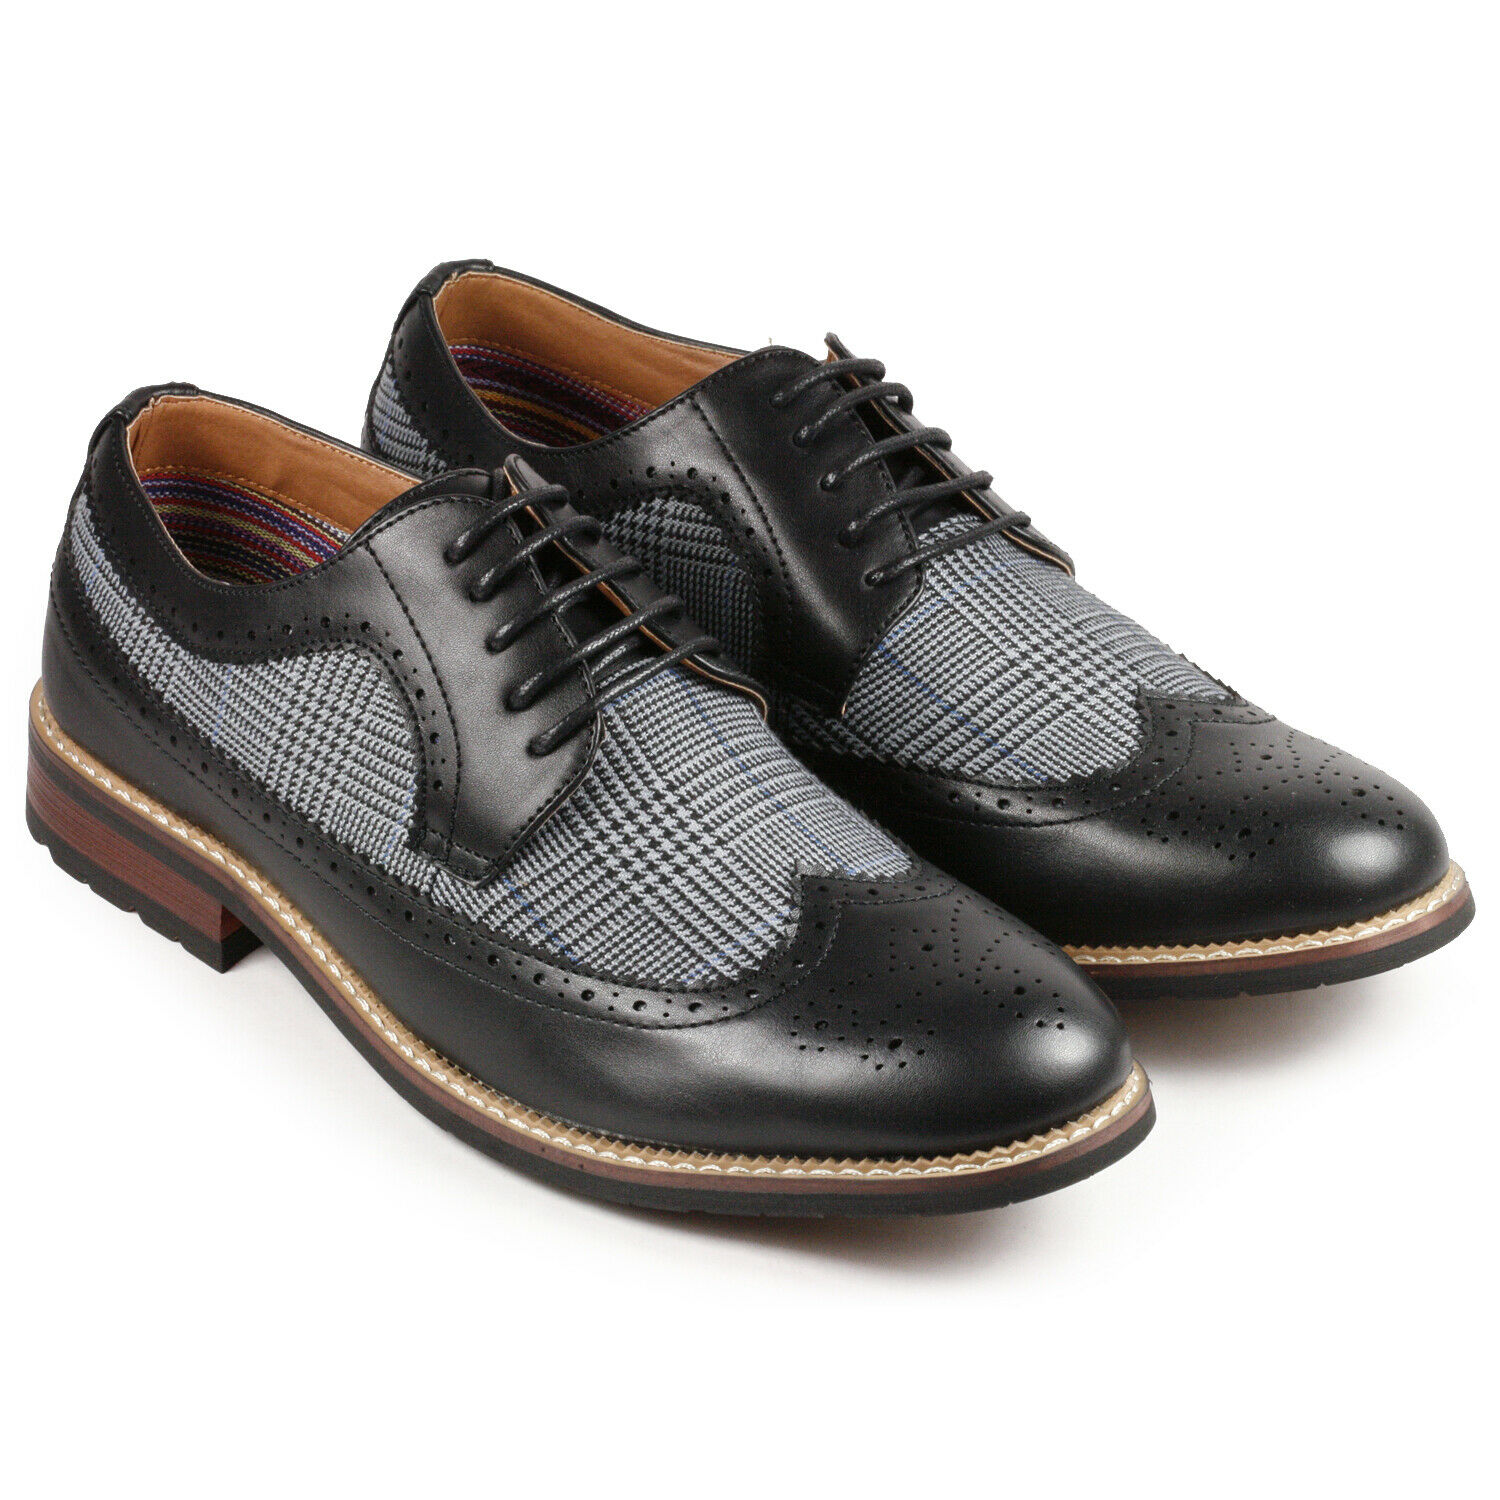 Black Tweed Men's Wing Tip Lace Up Oxford Dress Shoes